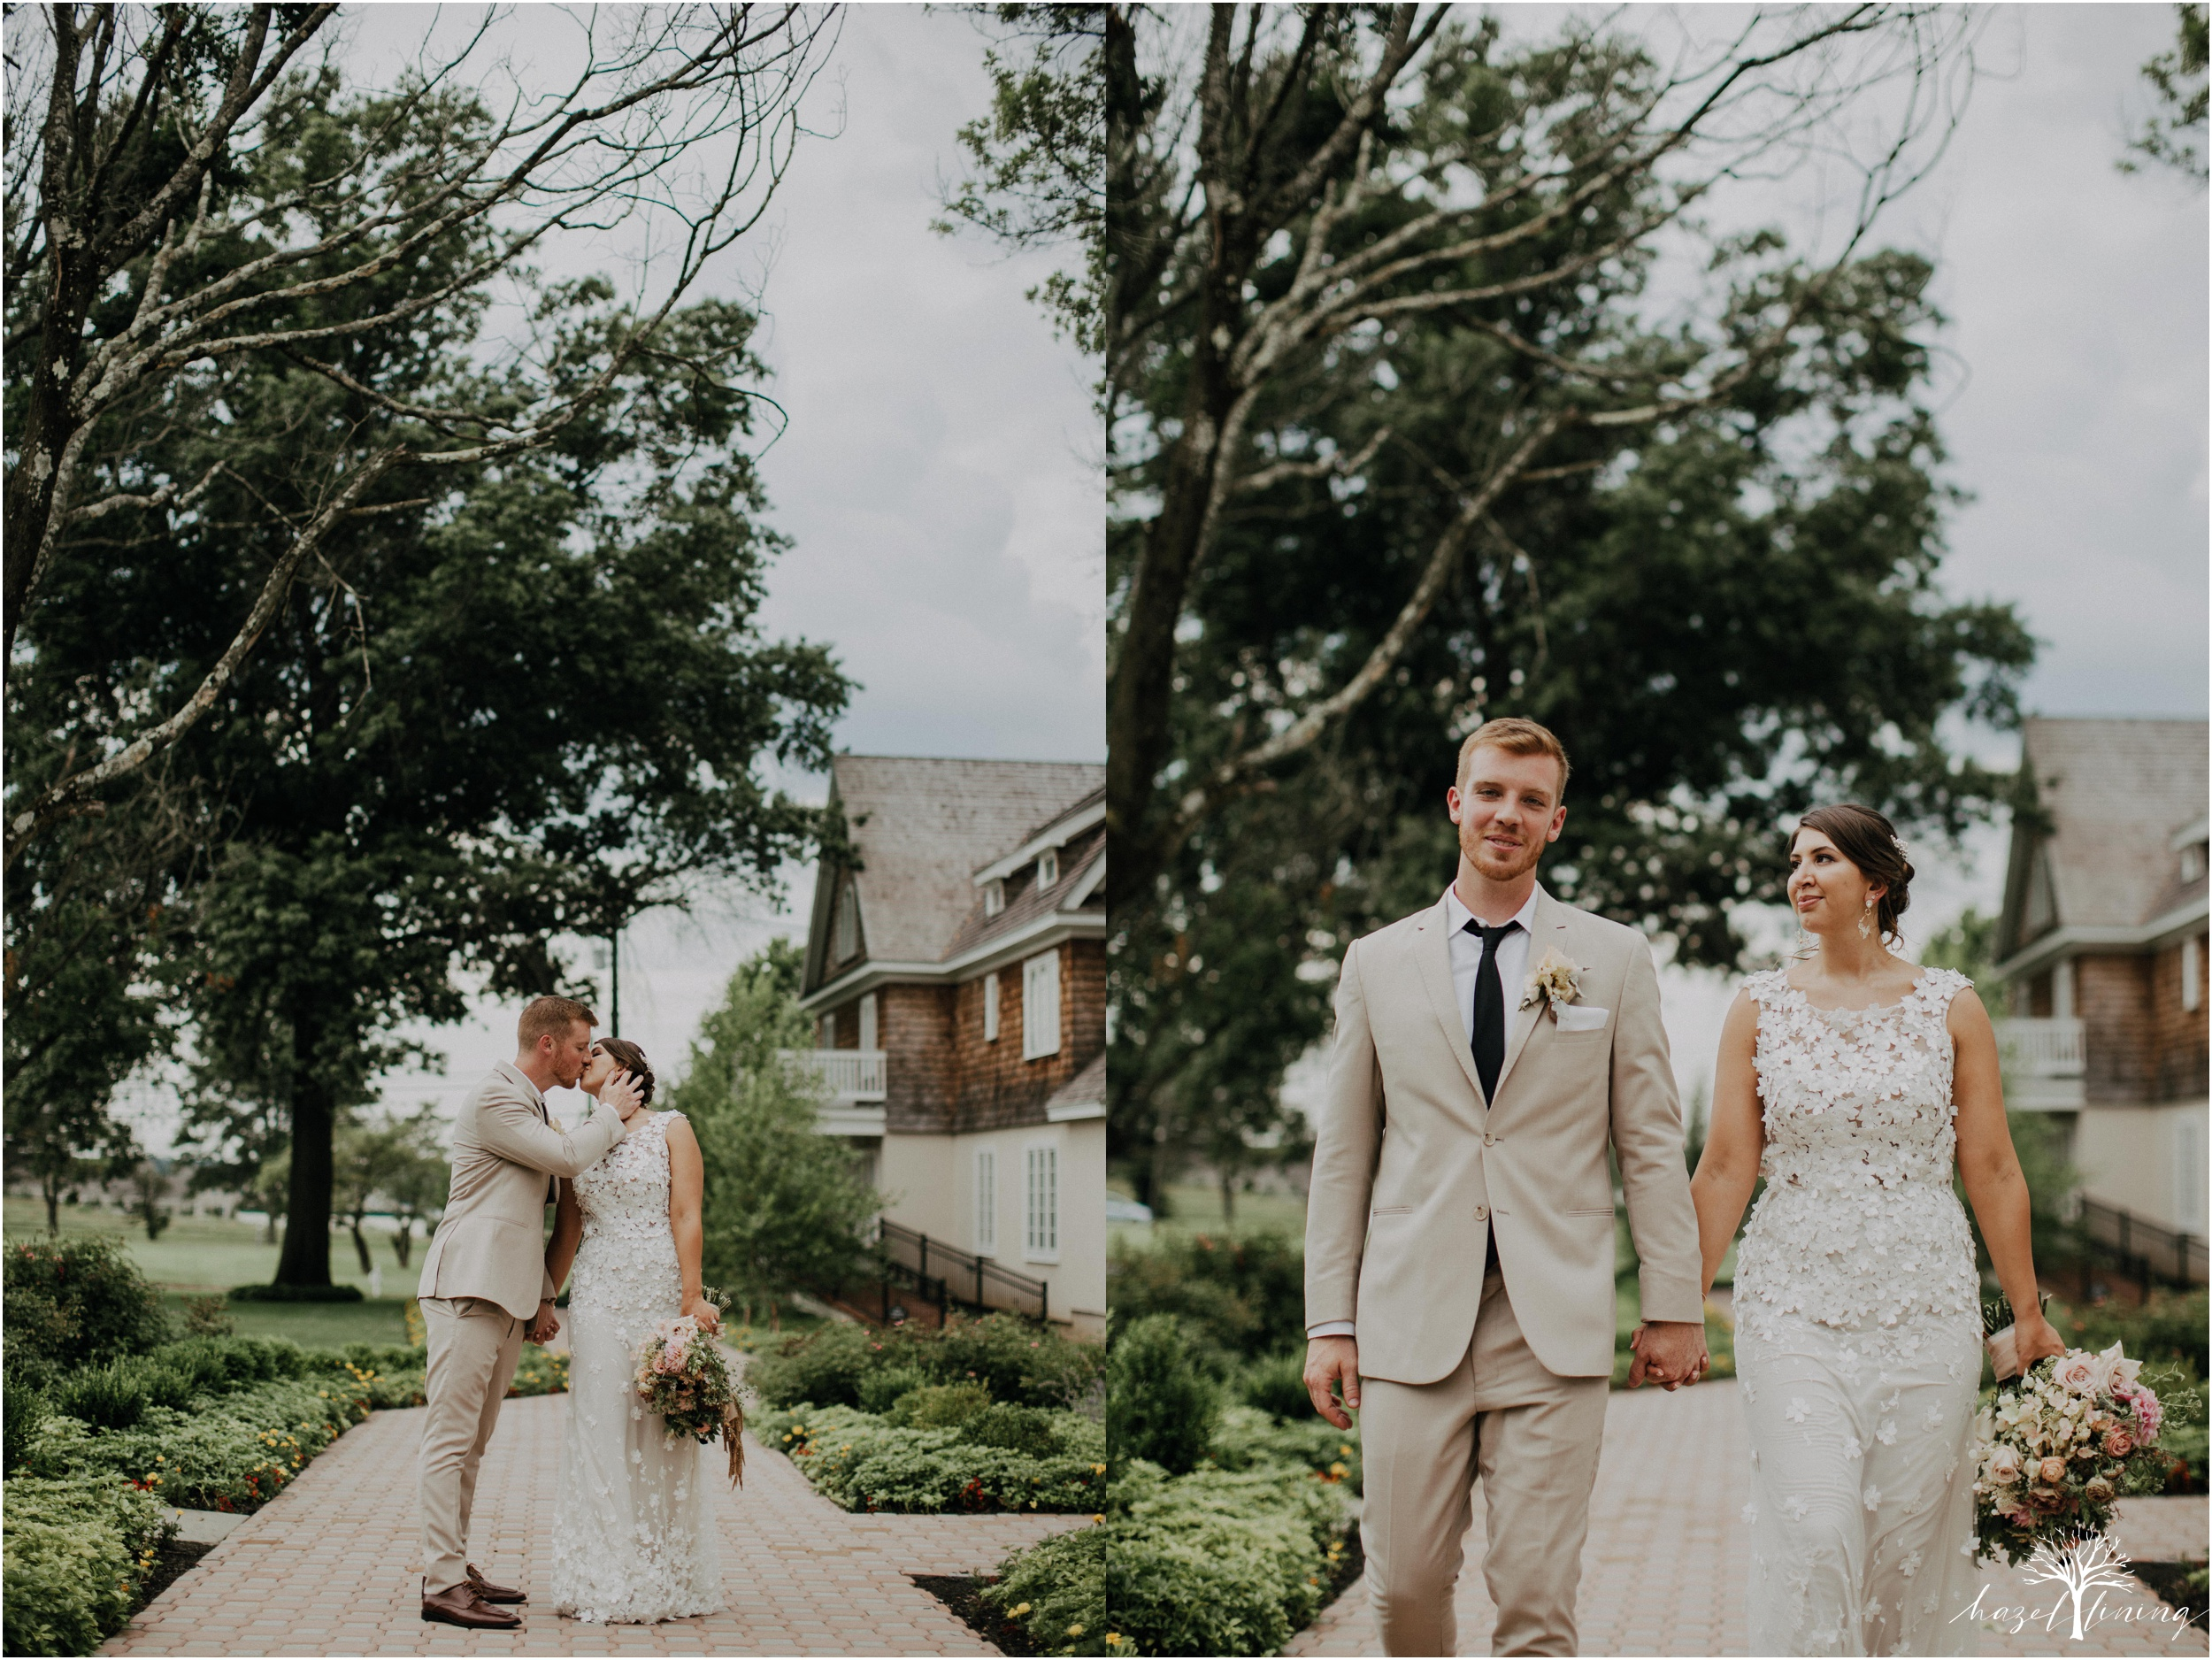 carl-chloe-the-ryland-inn-whitehouse-station-new-jersey-styled-squad-hazel-lining-photography-destination-elopement-wedding-engagement-photography_0028.jpg